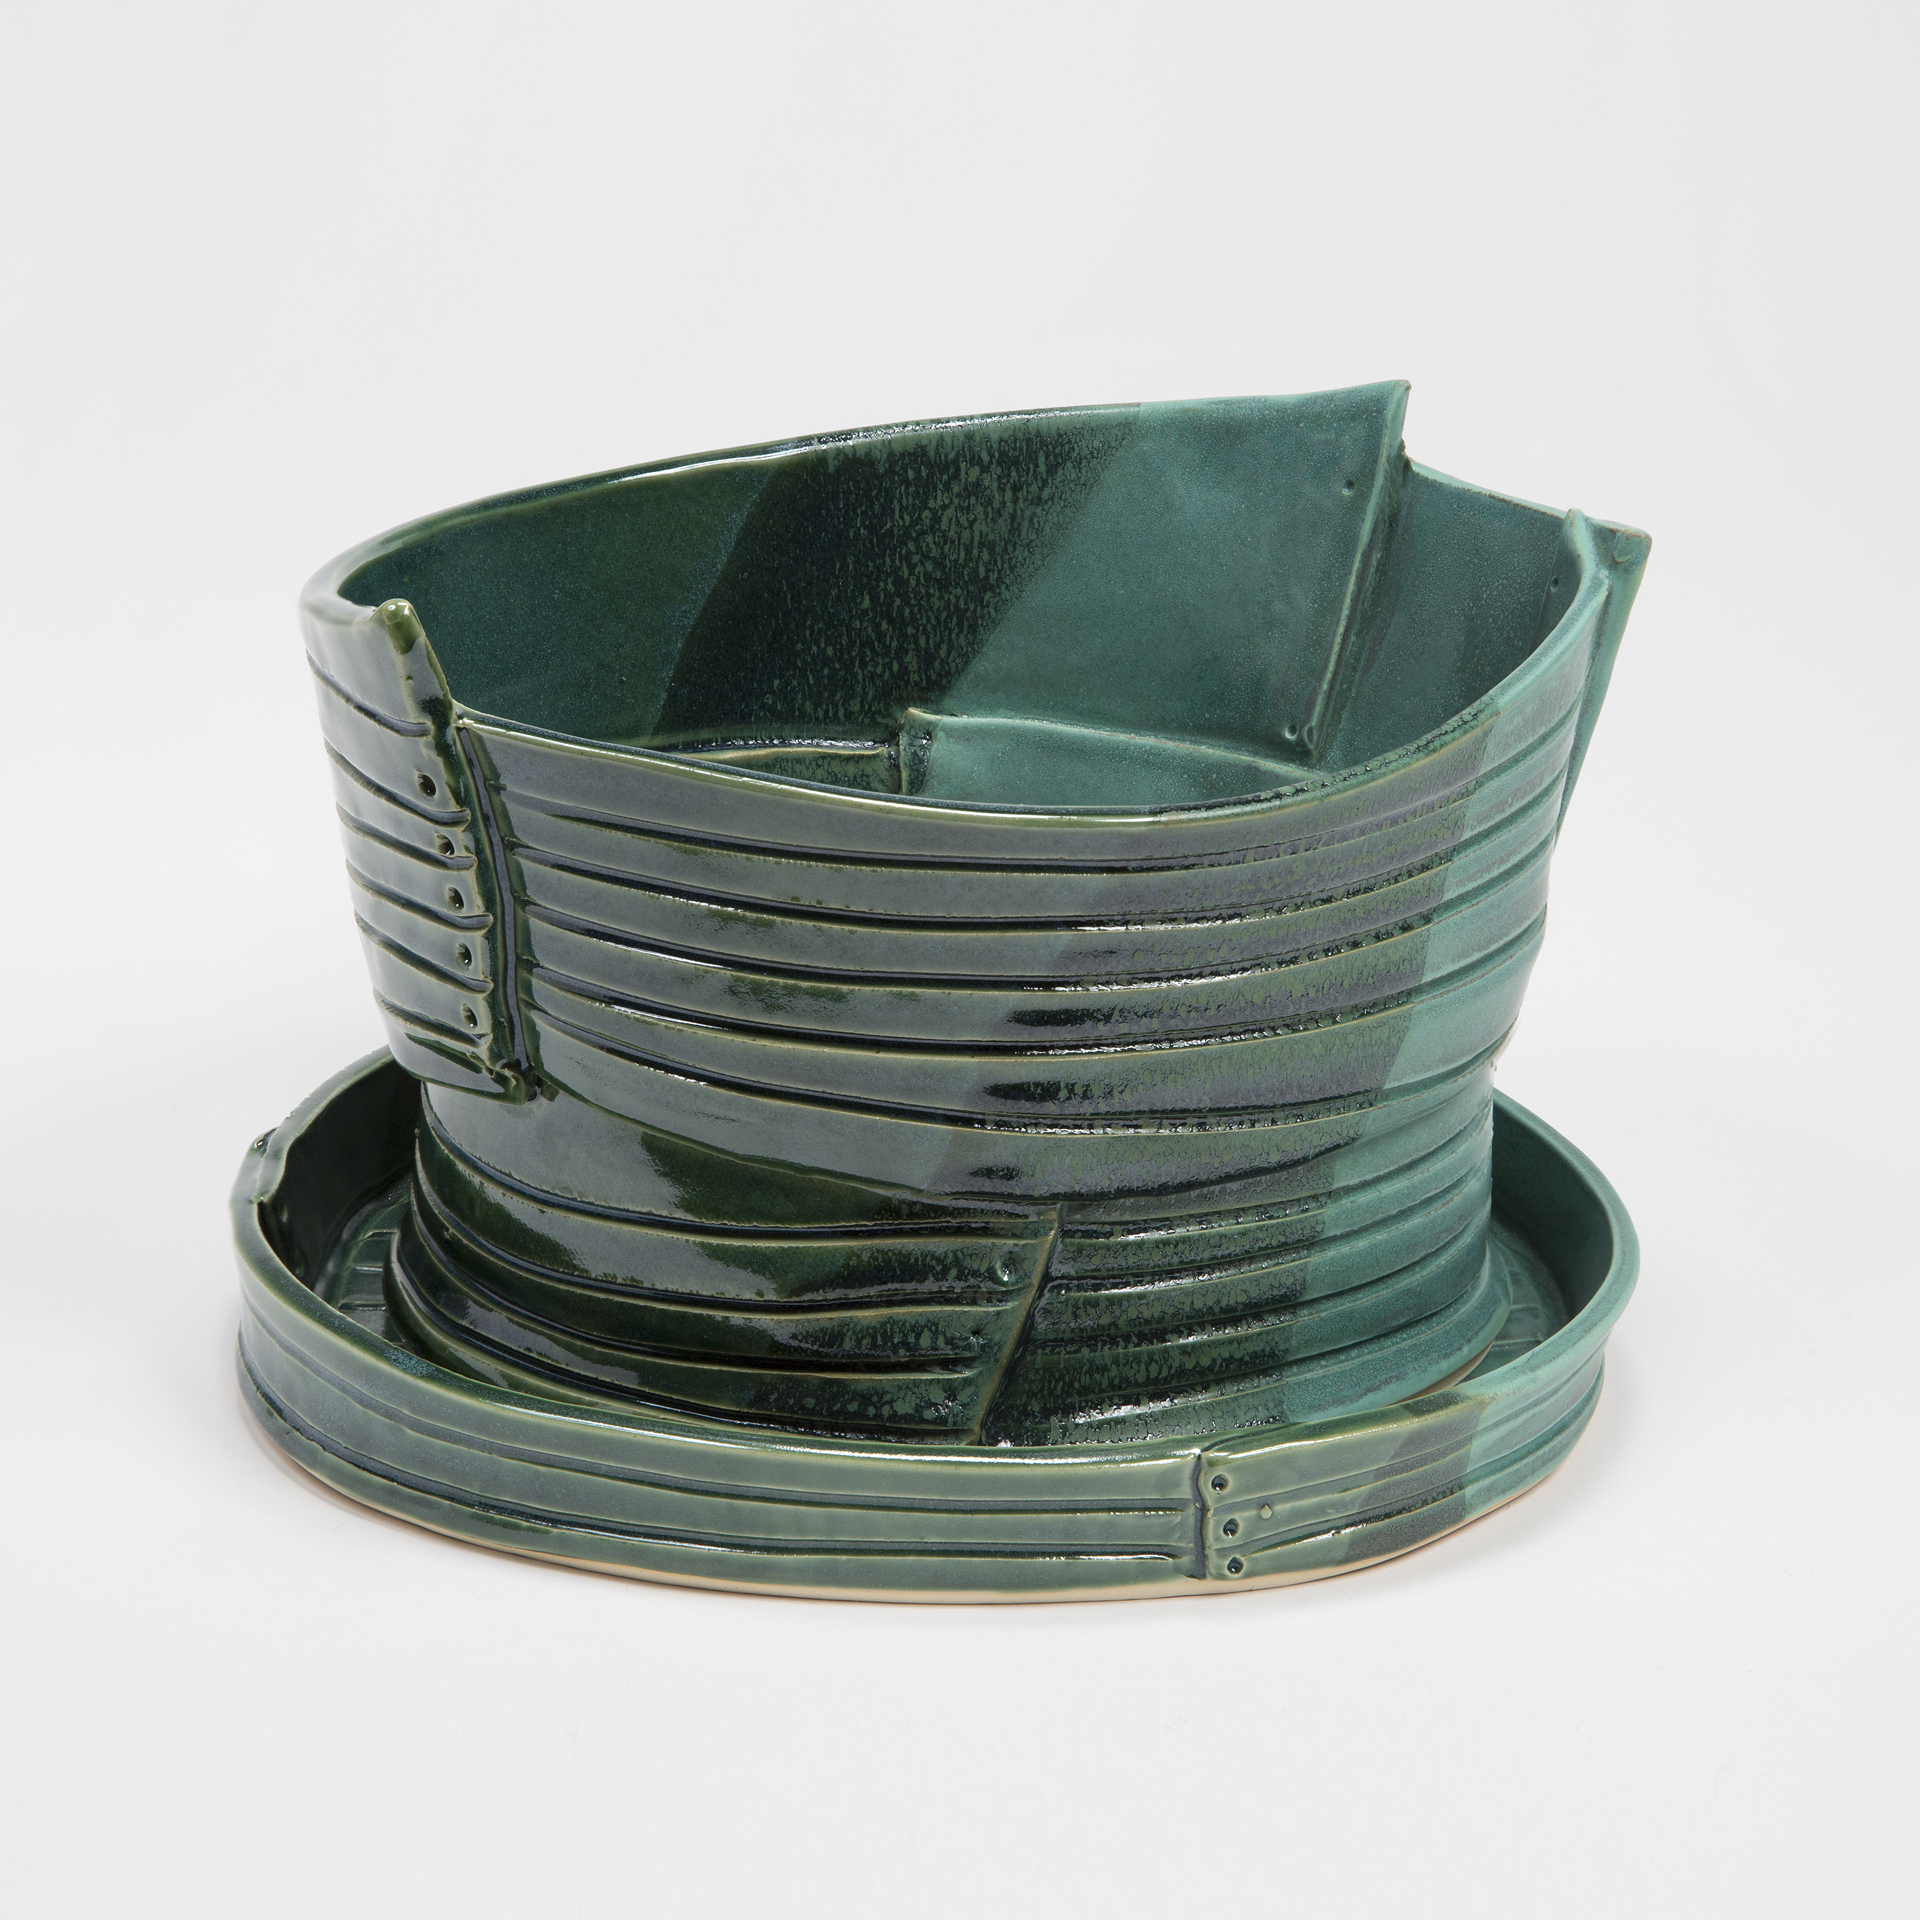 Multigreen Pot with Drainage Holes and Detached Tray